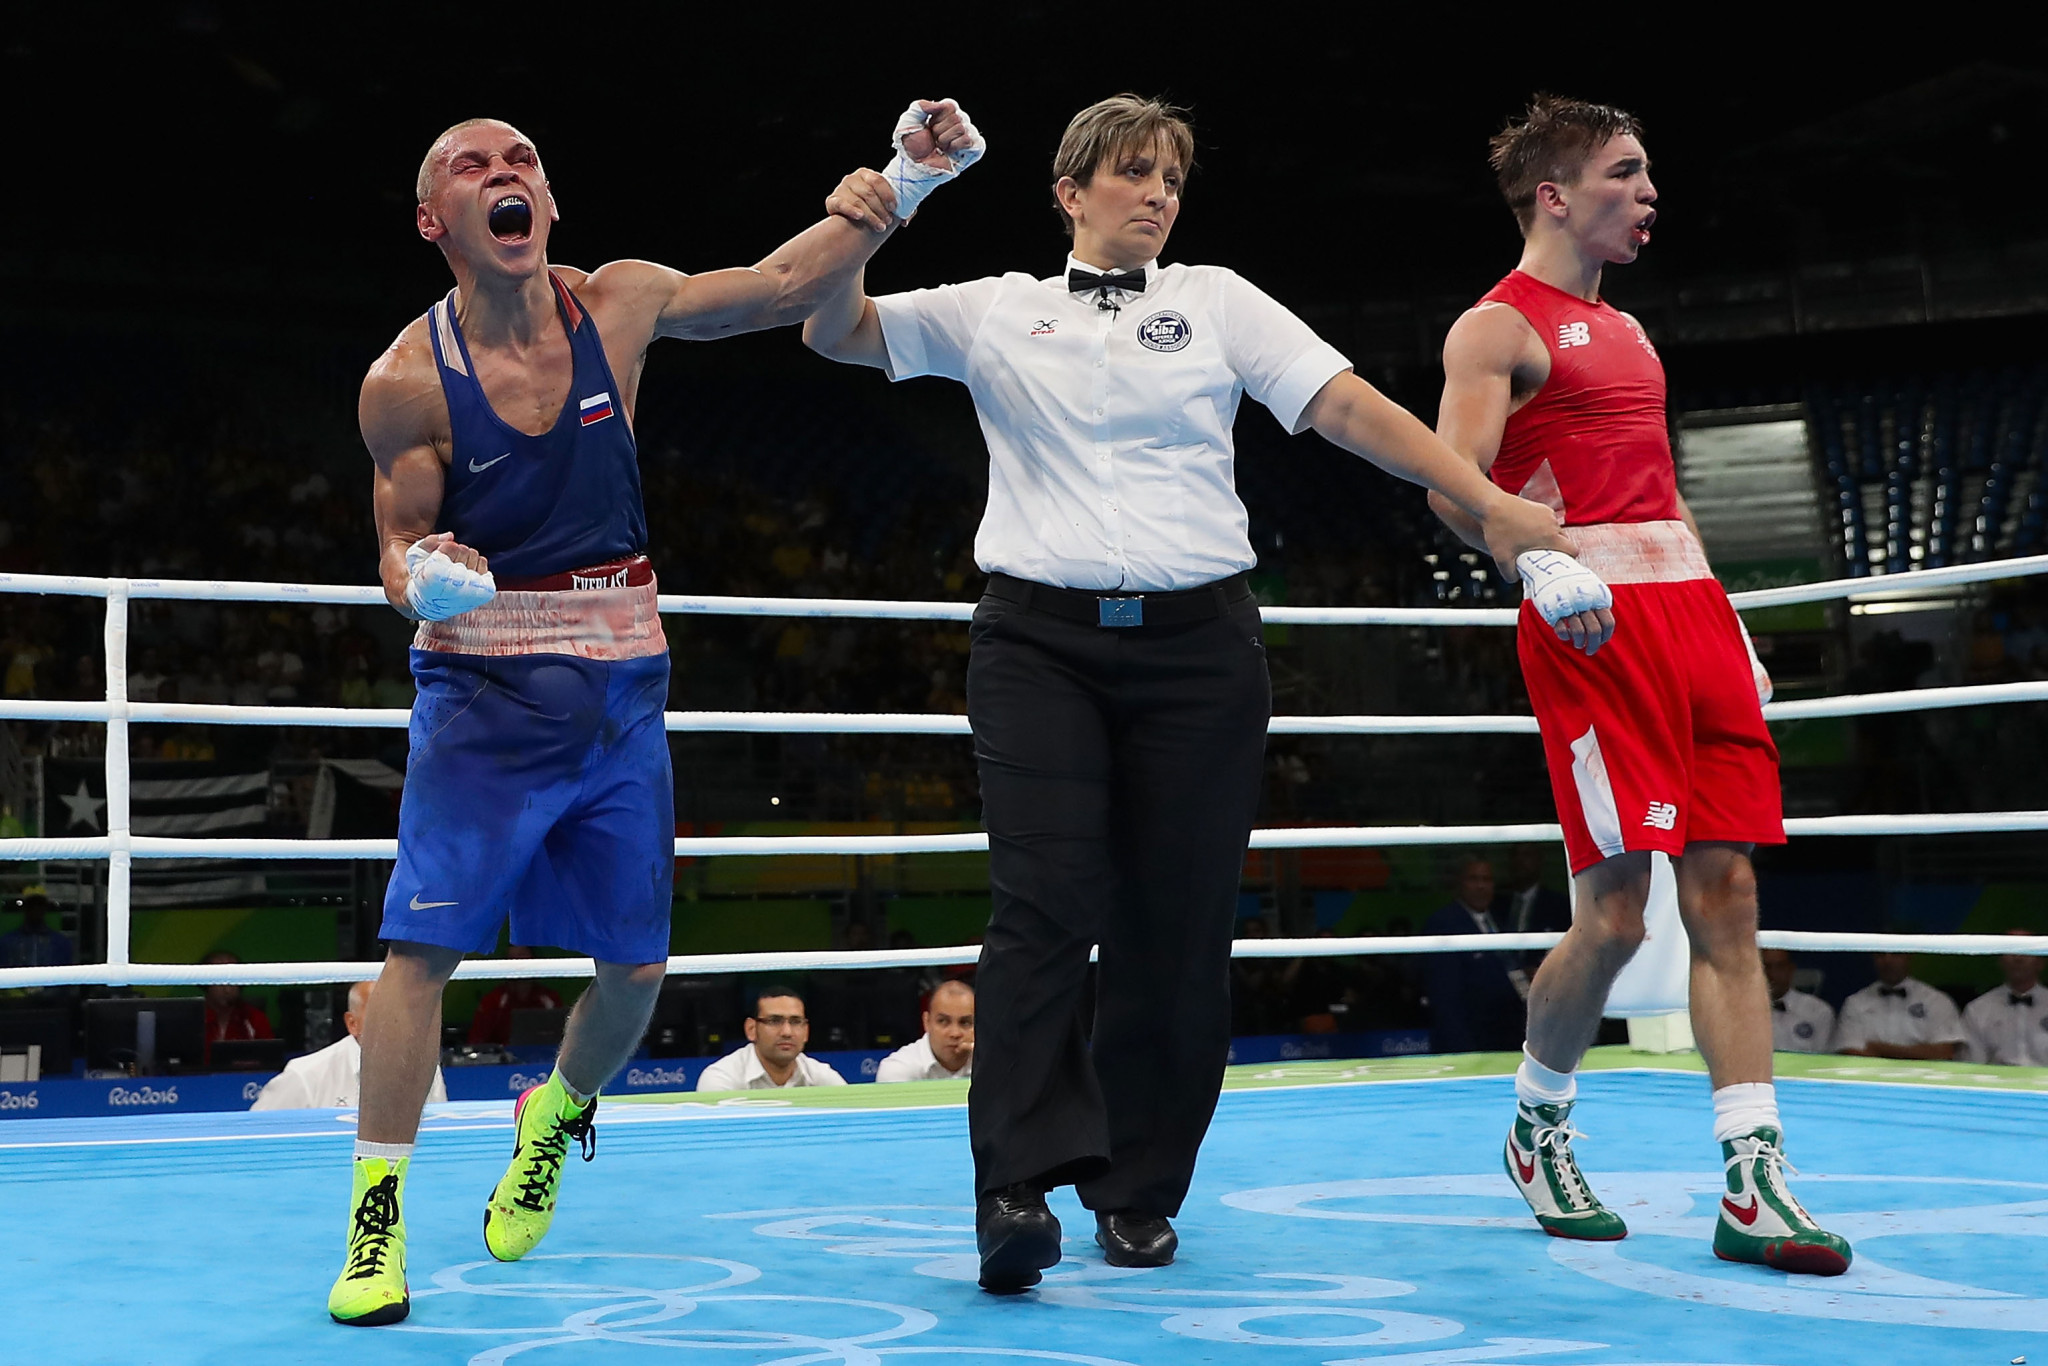 Michael Conlan was involved in one of the most controversial contests at the Rio 2016 Olympic Games after appearing to dominate a quarter-final against Vladimir Nikitin before the Russian was awarded the victory ©Getty Images